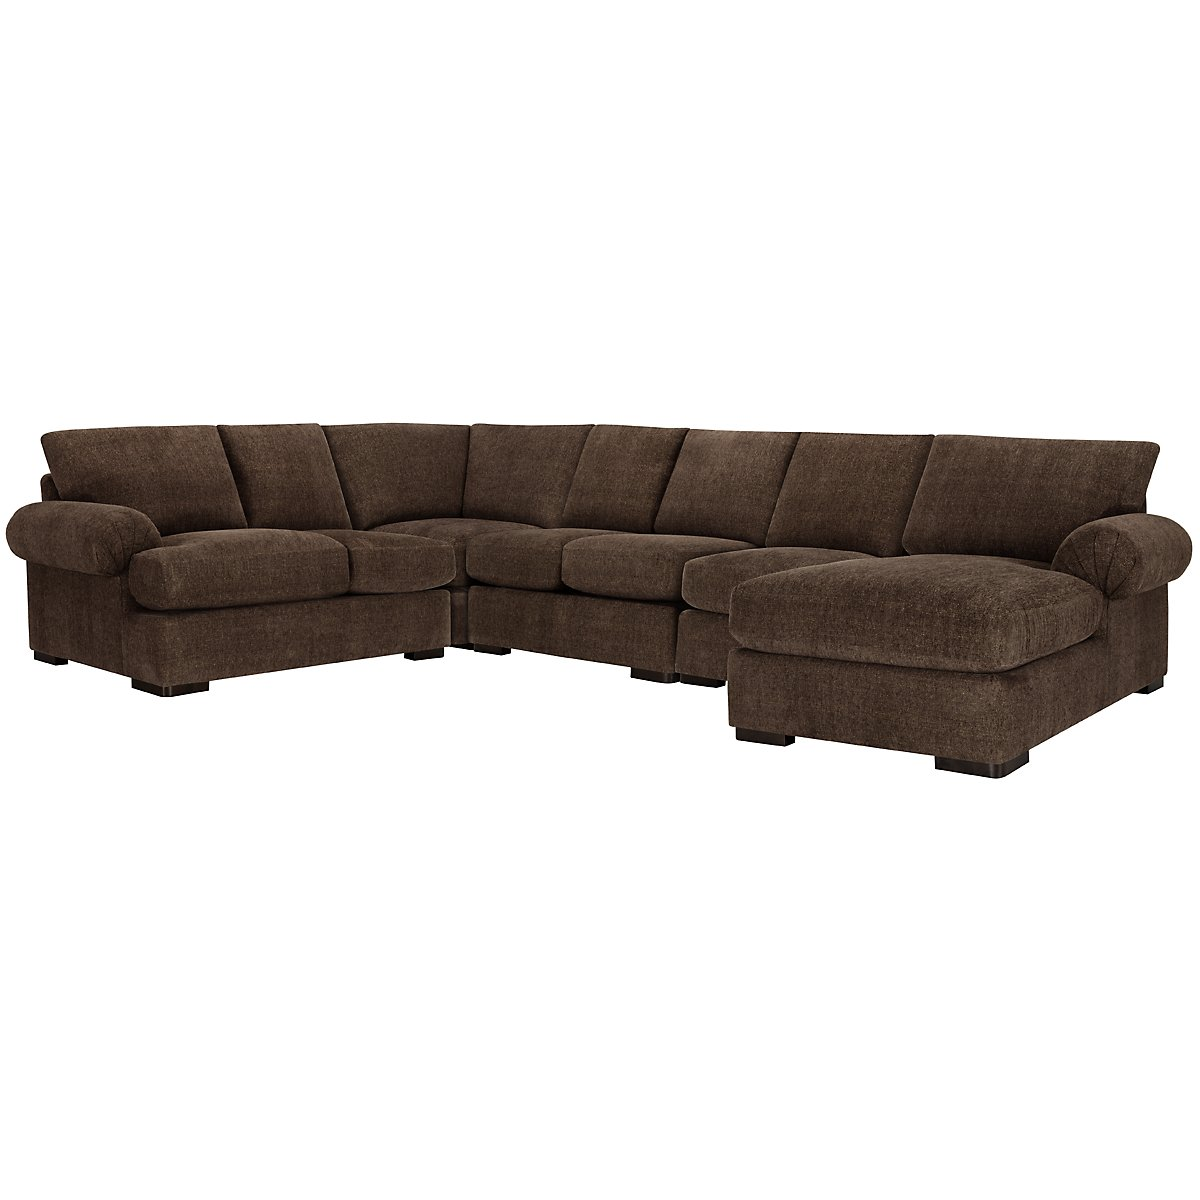 City furniture belair dk brown microfiber large right for Brown microfiber sectional with chaise